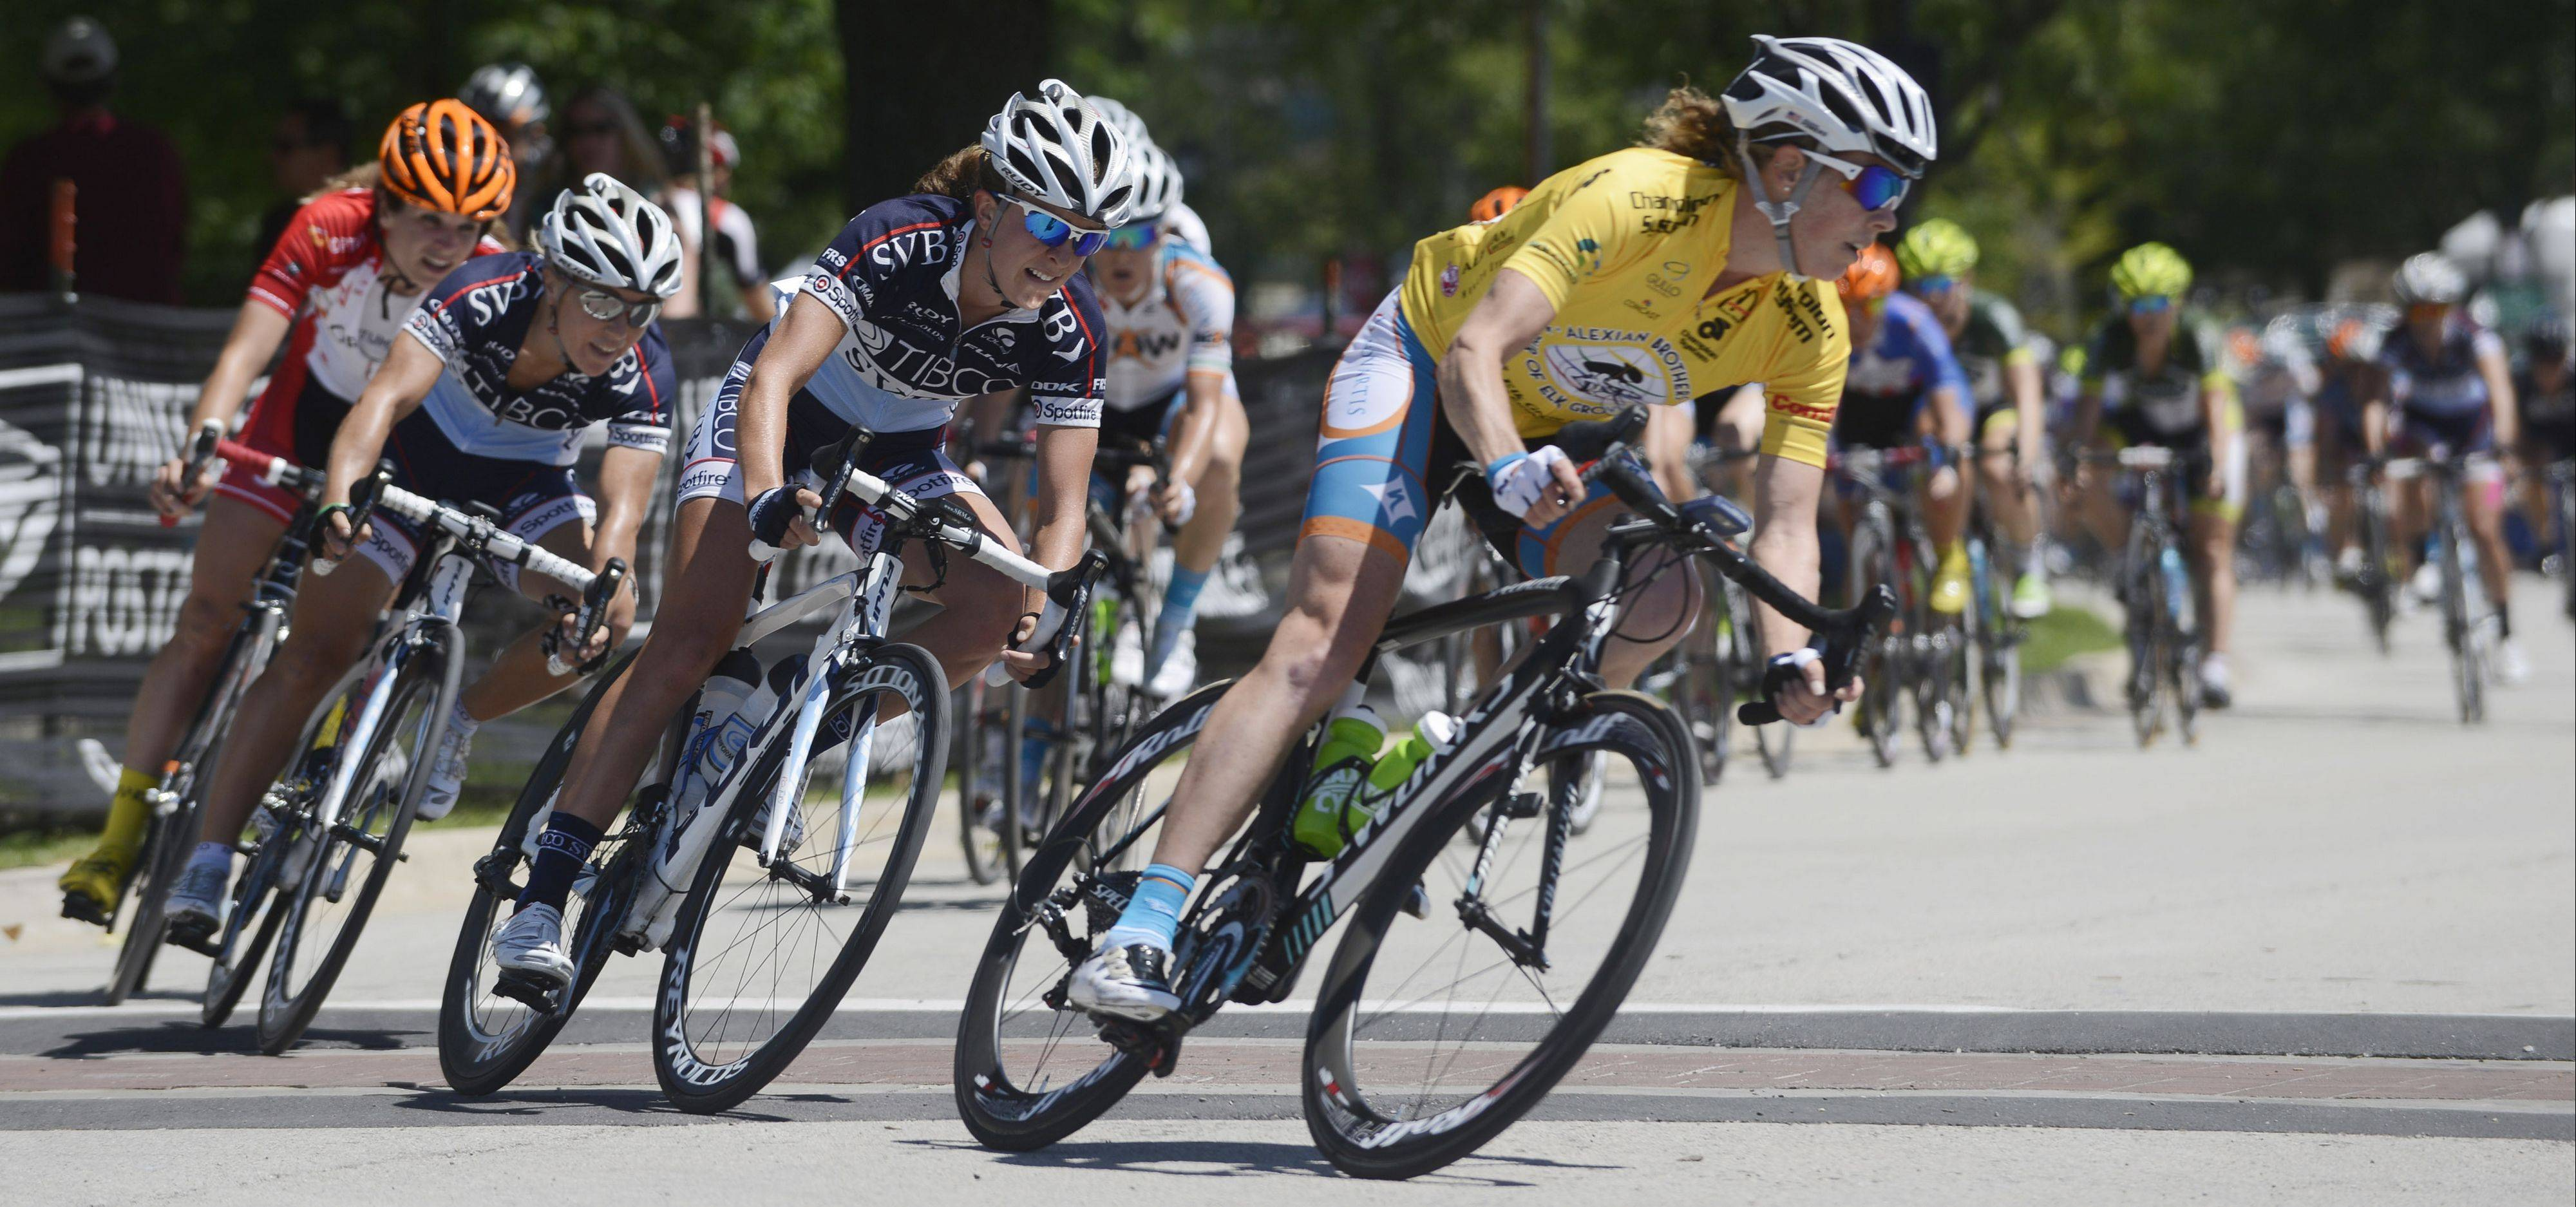 Cycling fans flock to Elk Grove competition